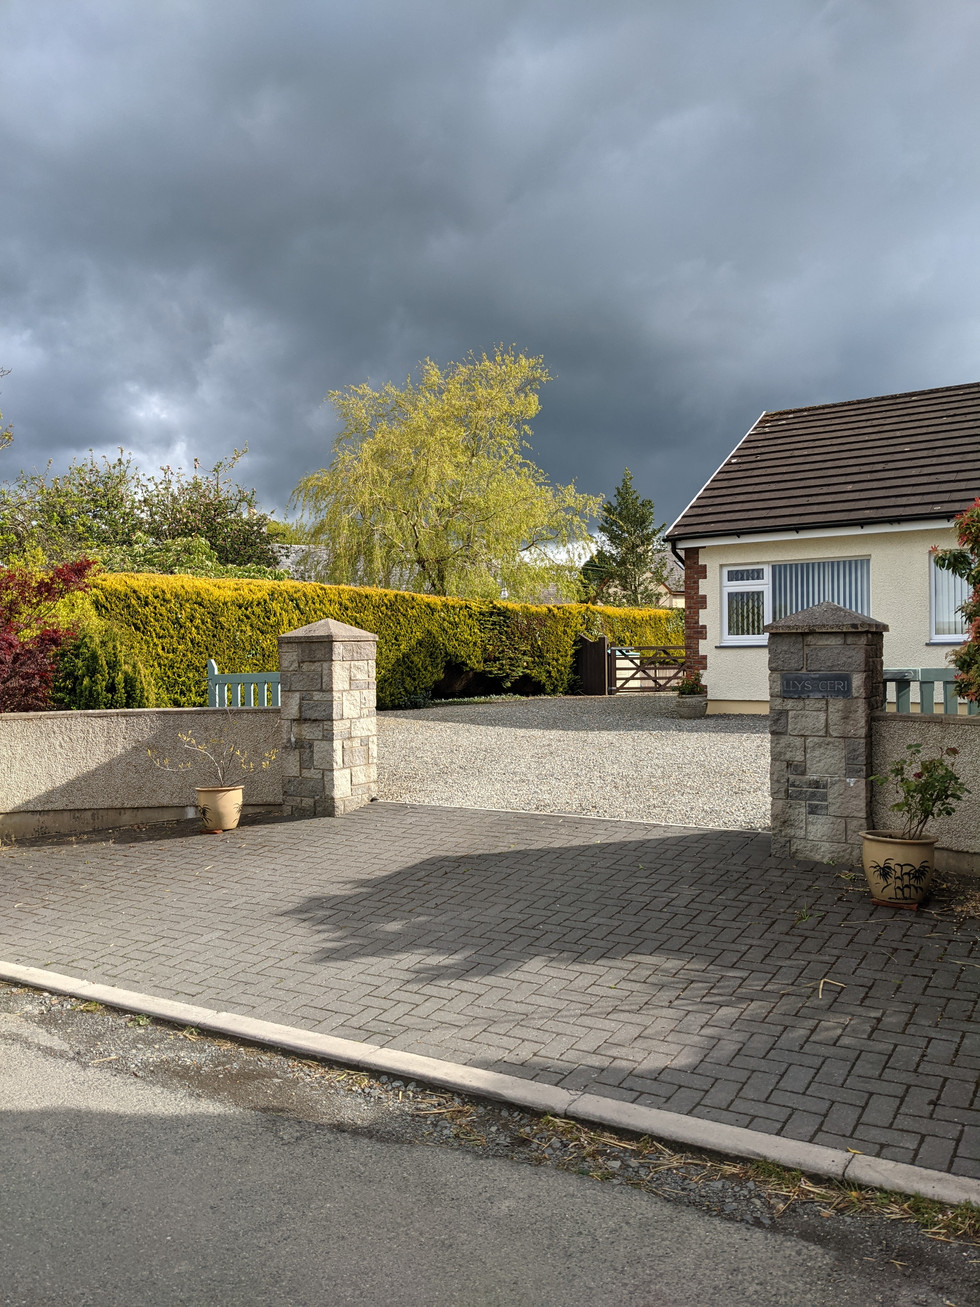 Access to private drive  and parking area next to accommodation.